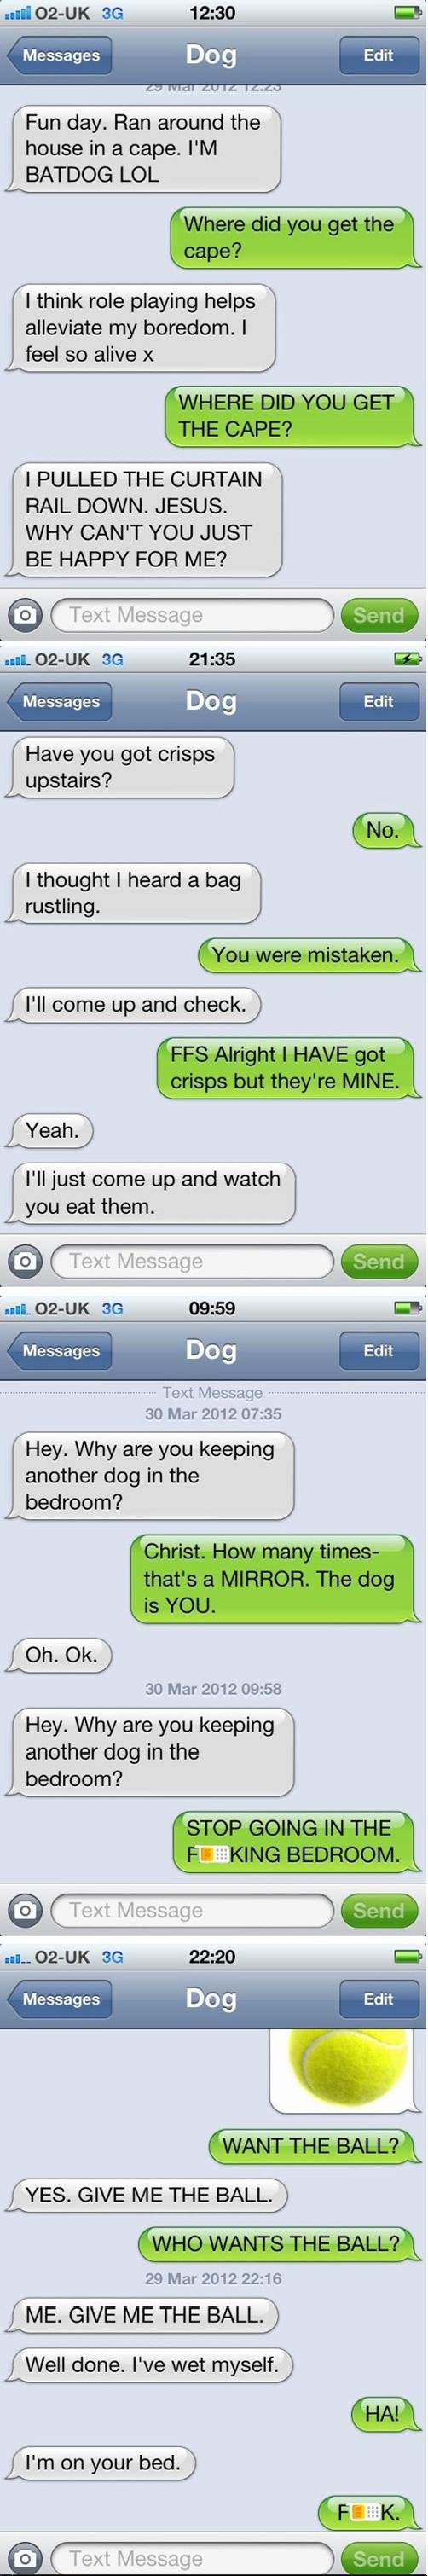 Just Texting My Dog If Dogs Could Text Dog Texts Make Me Laugh